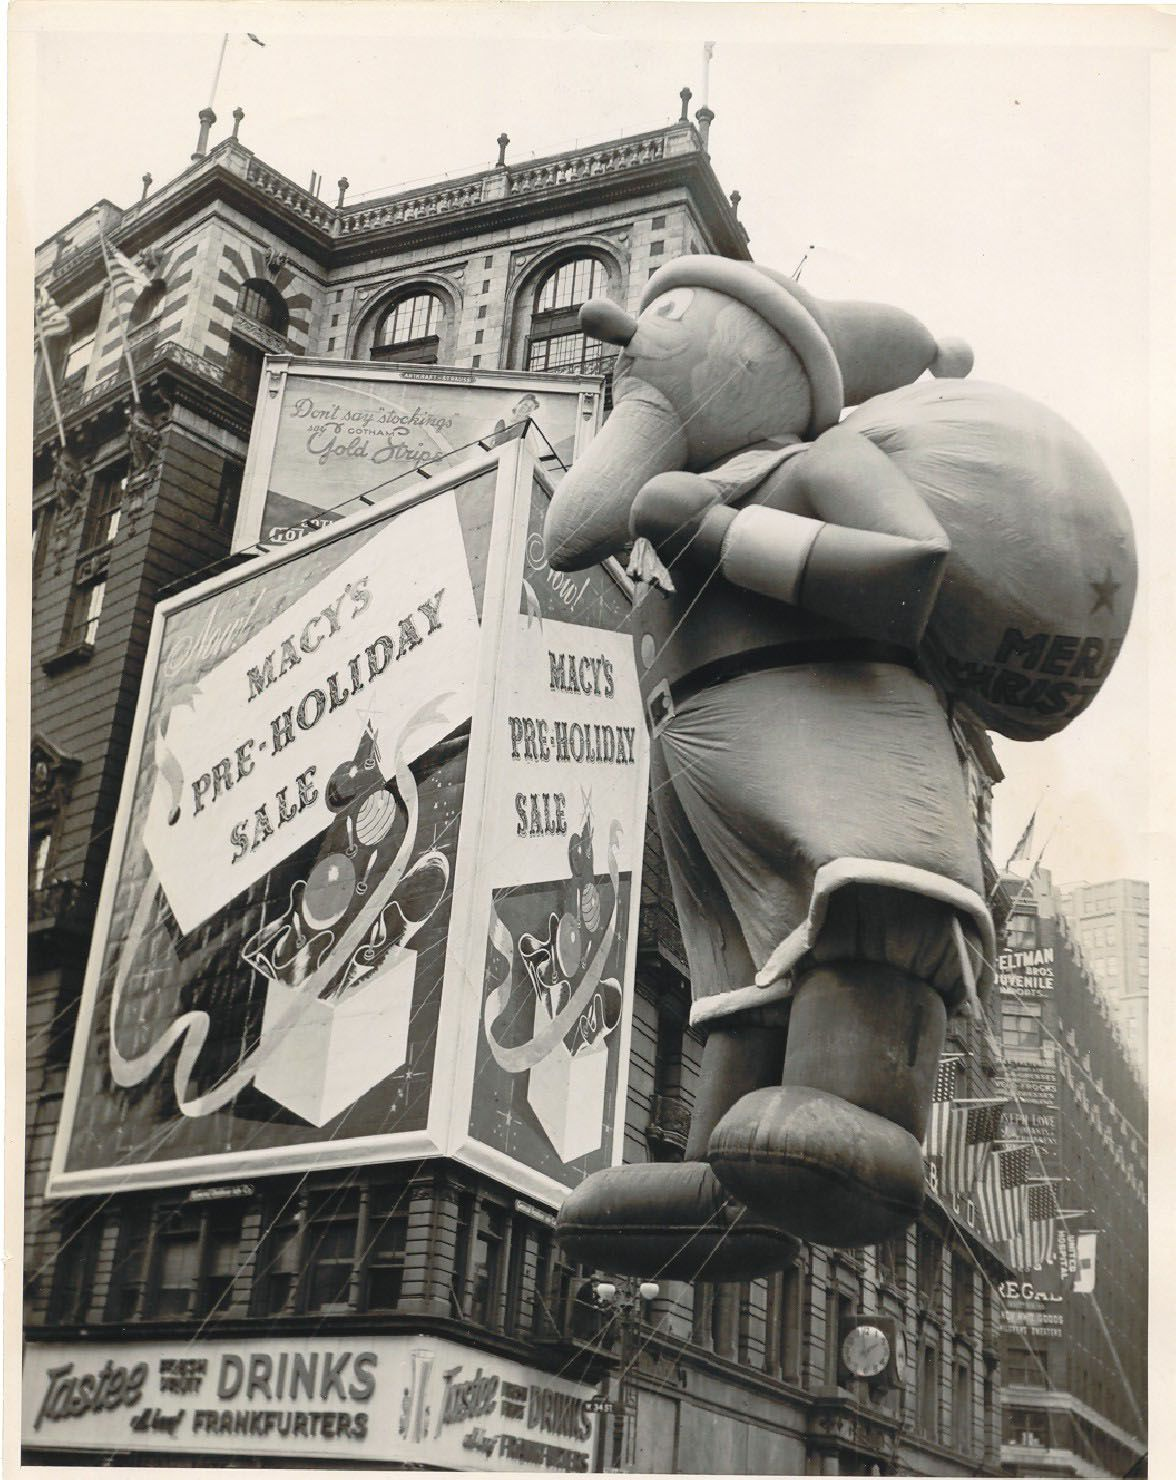 A santa balloon floats by Macy's in new York City in a black and white 1940 photo